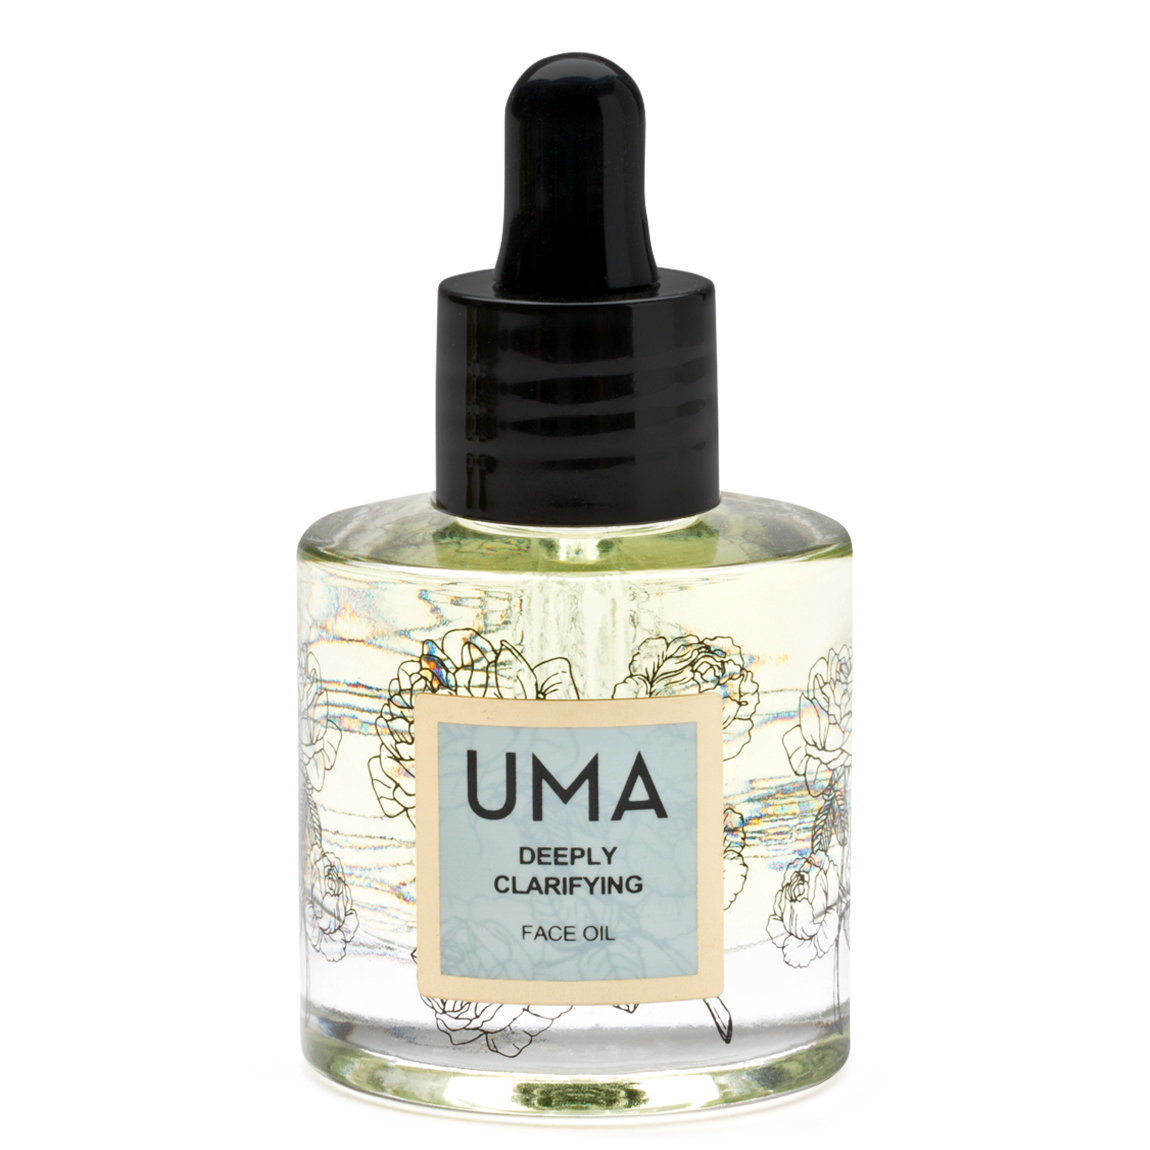 Uma Deeply Clarifying Face Oil 1 fl oz alternative view 1 - product swatch.